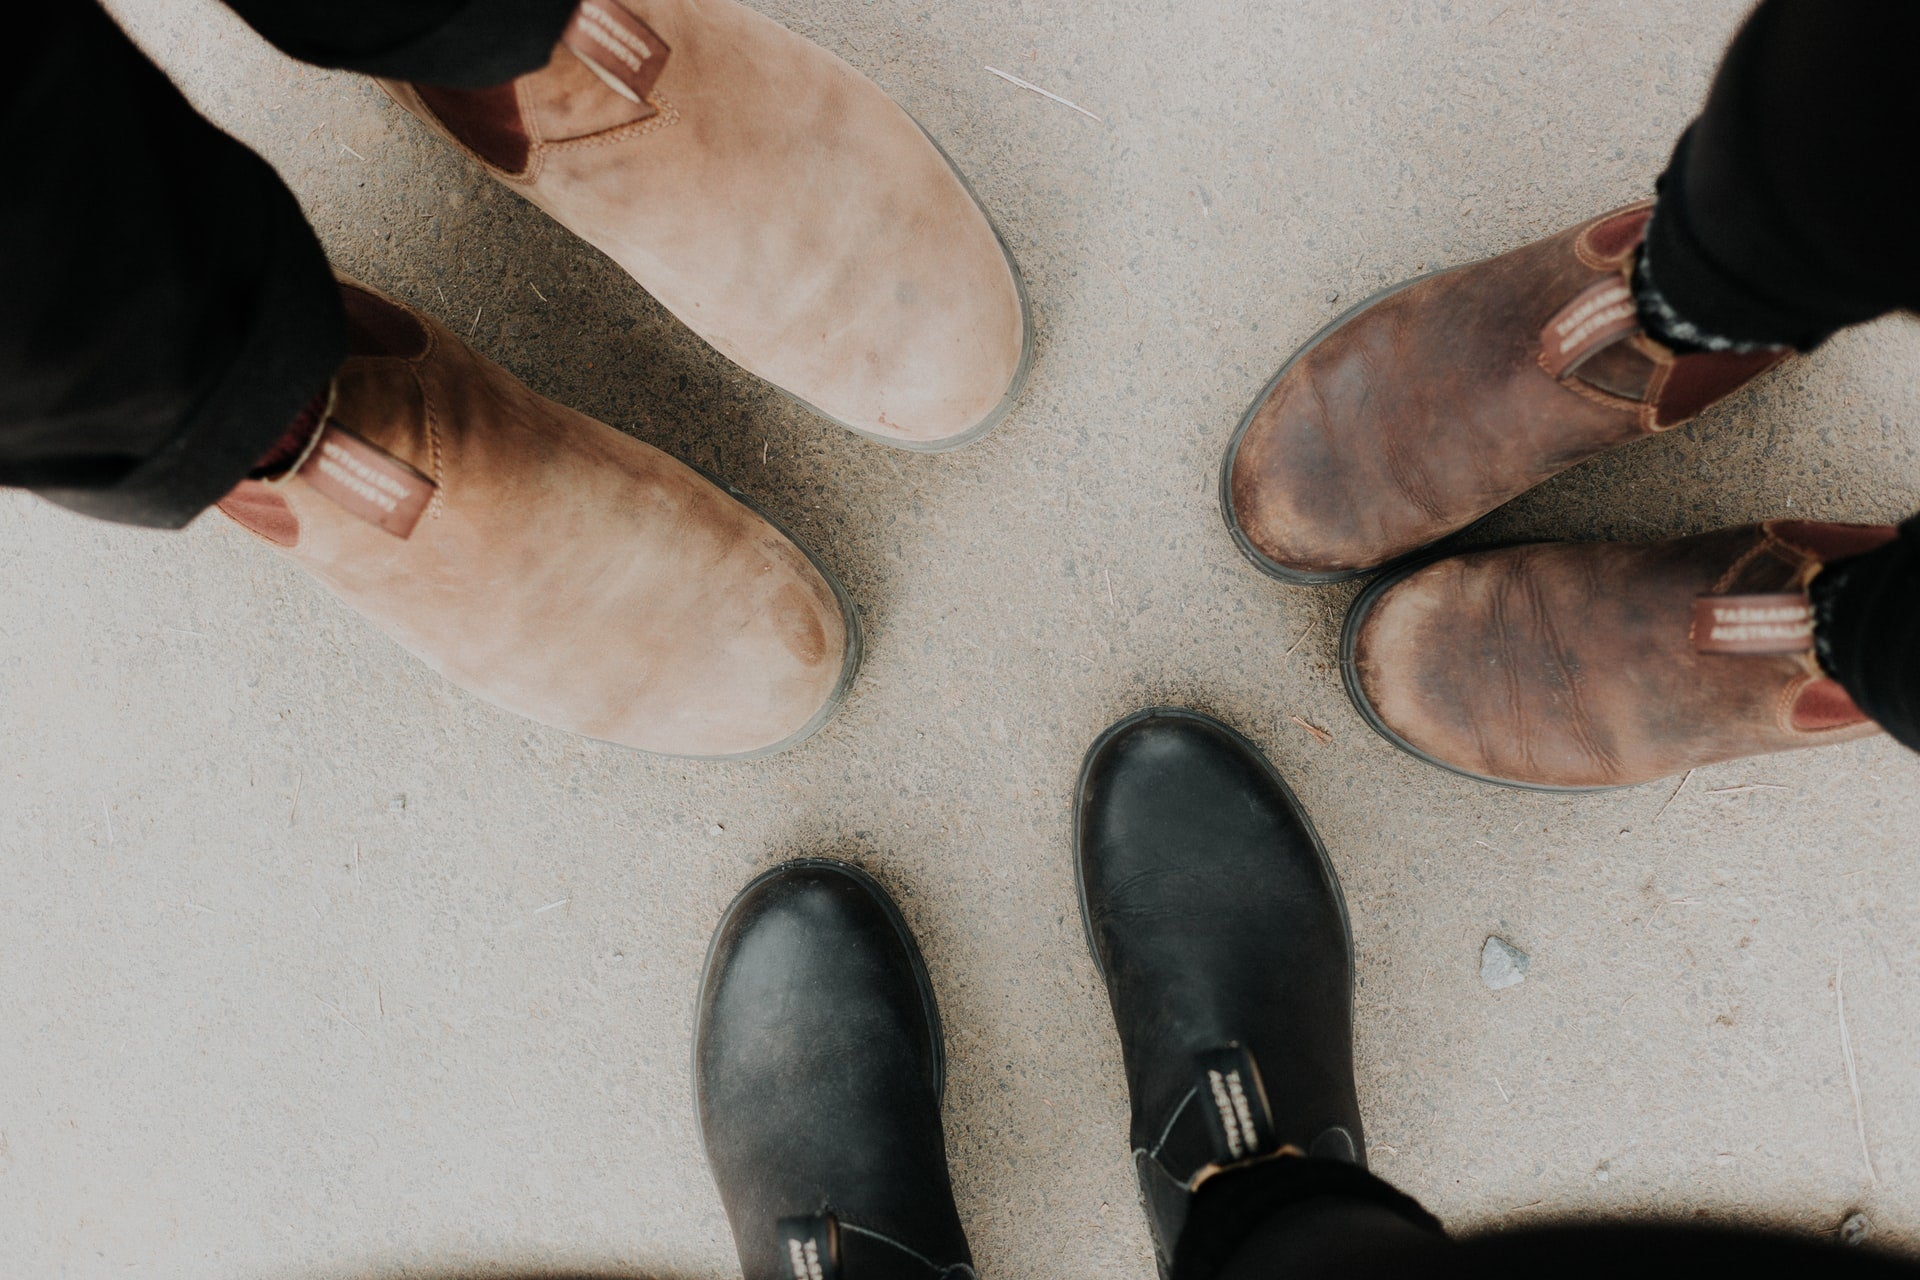 A photo of three people standing in a small circle, the camera is pointed at their shoes